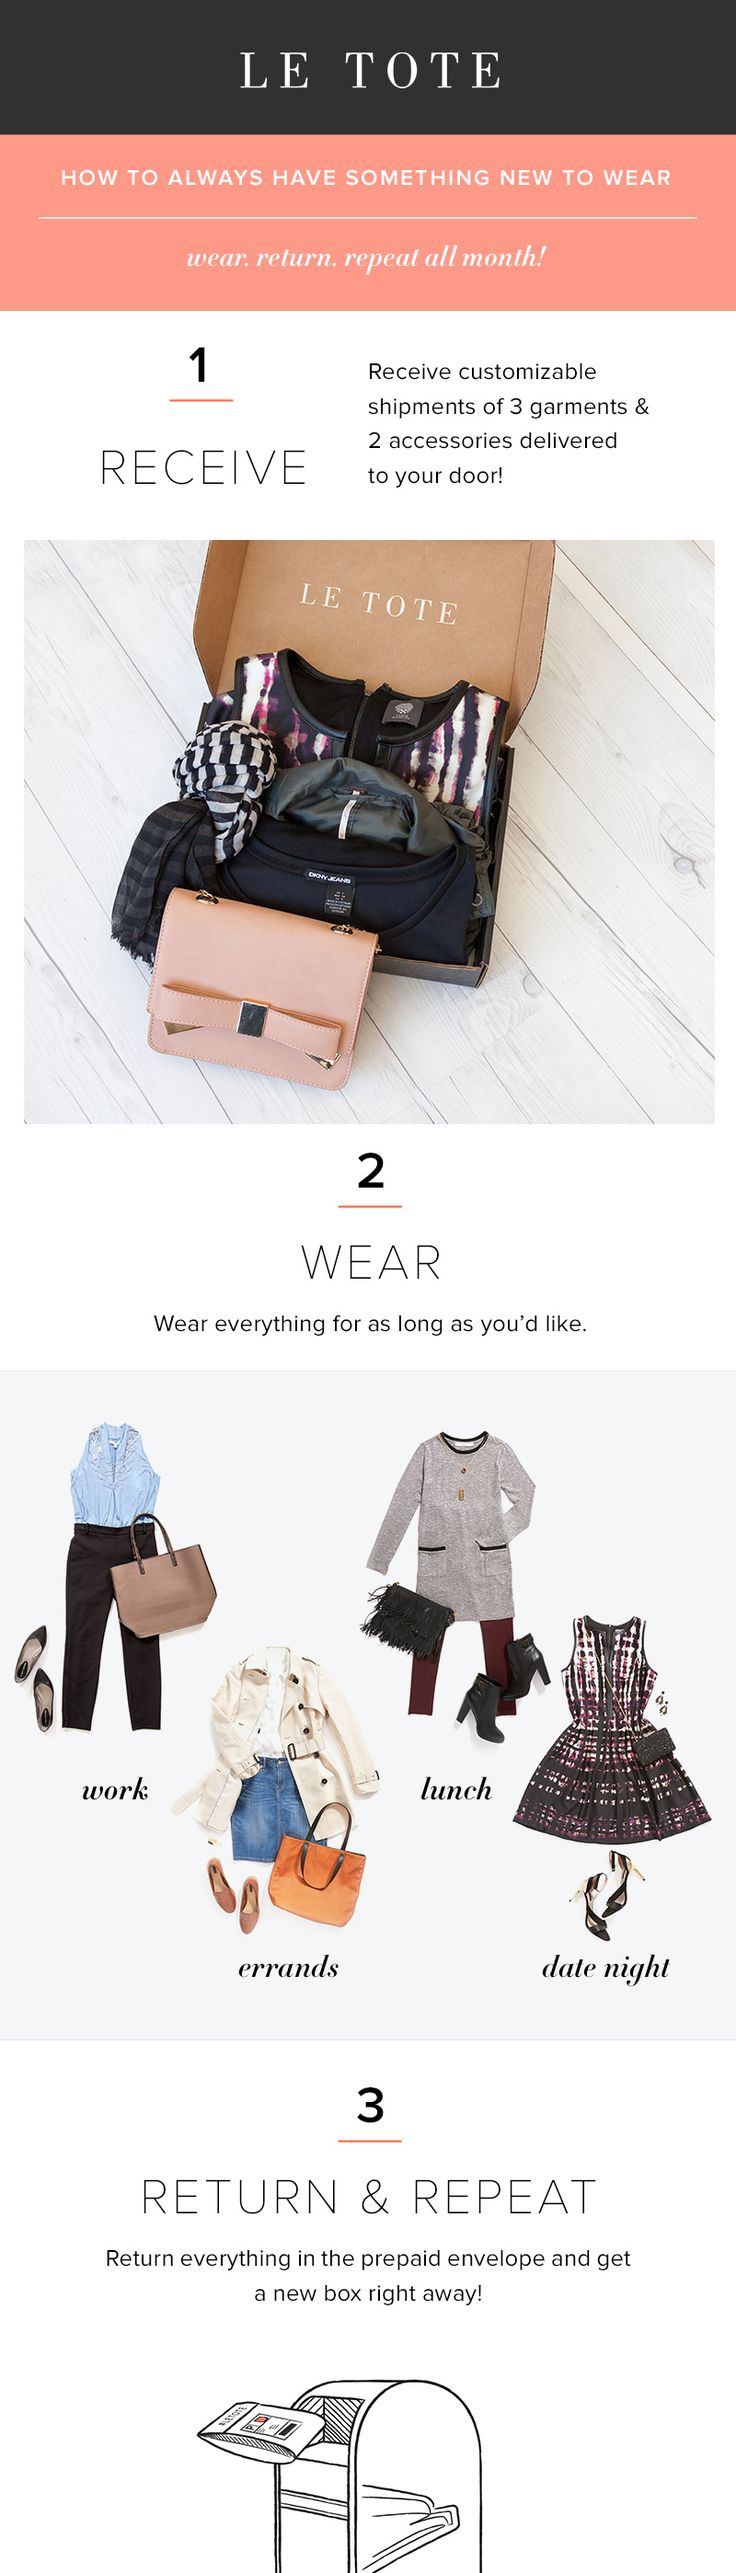 Ready for your fall wardrobe? Try Le Tote for $49/month and get 3 garments and 2 accessories delivered to your door - unlimited times each month. Wear everything. Send it back. Receive your next set of options days later! Who wouldn't want to always have something new to wear?